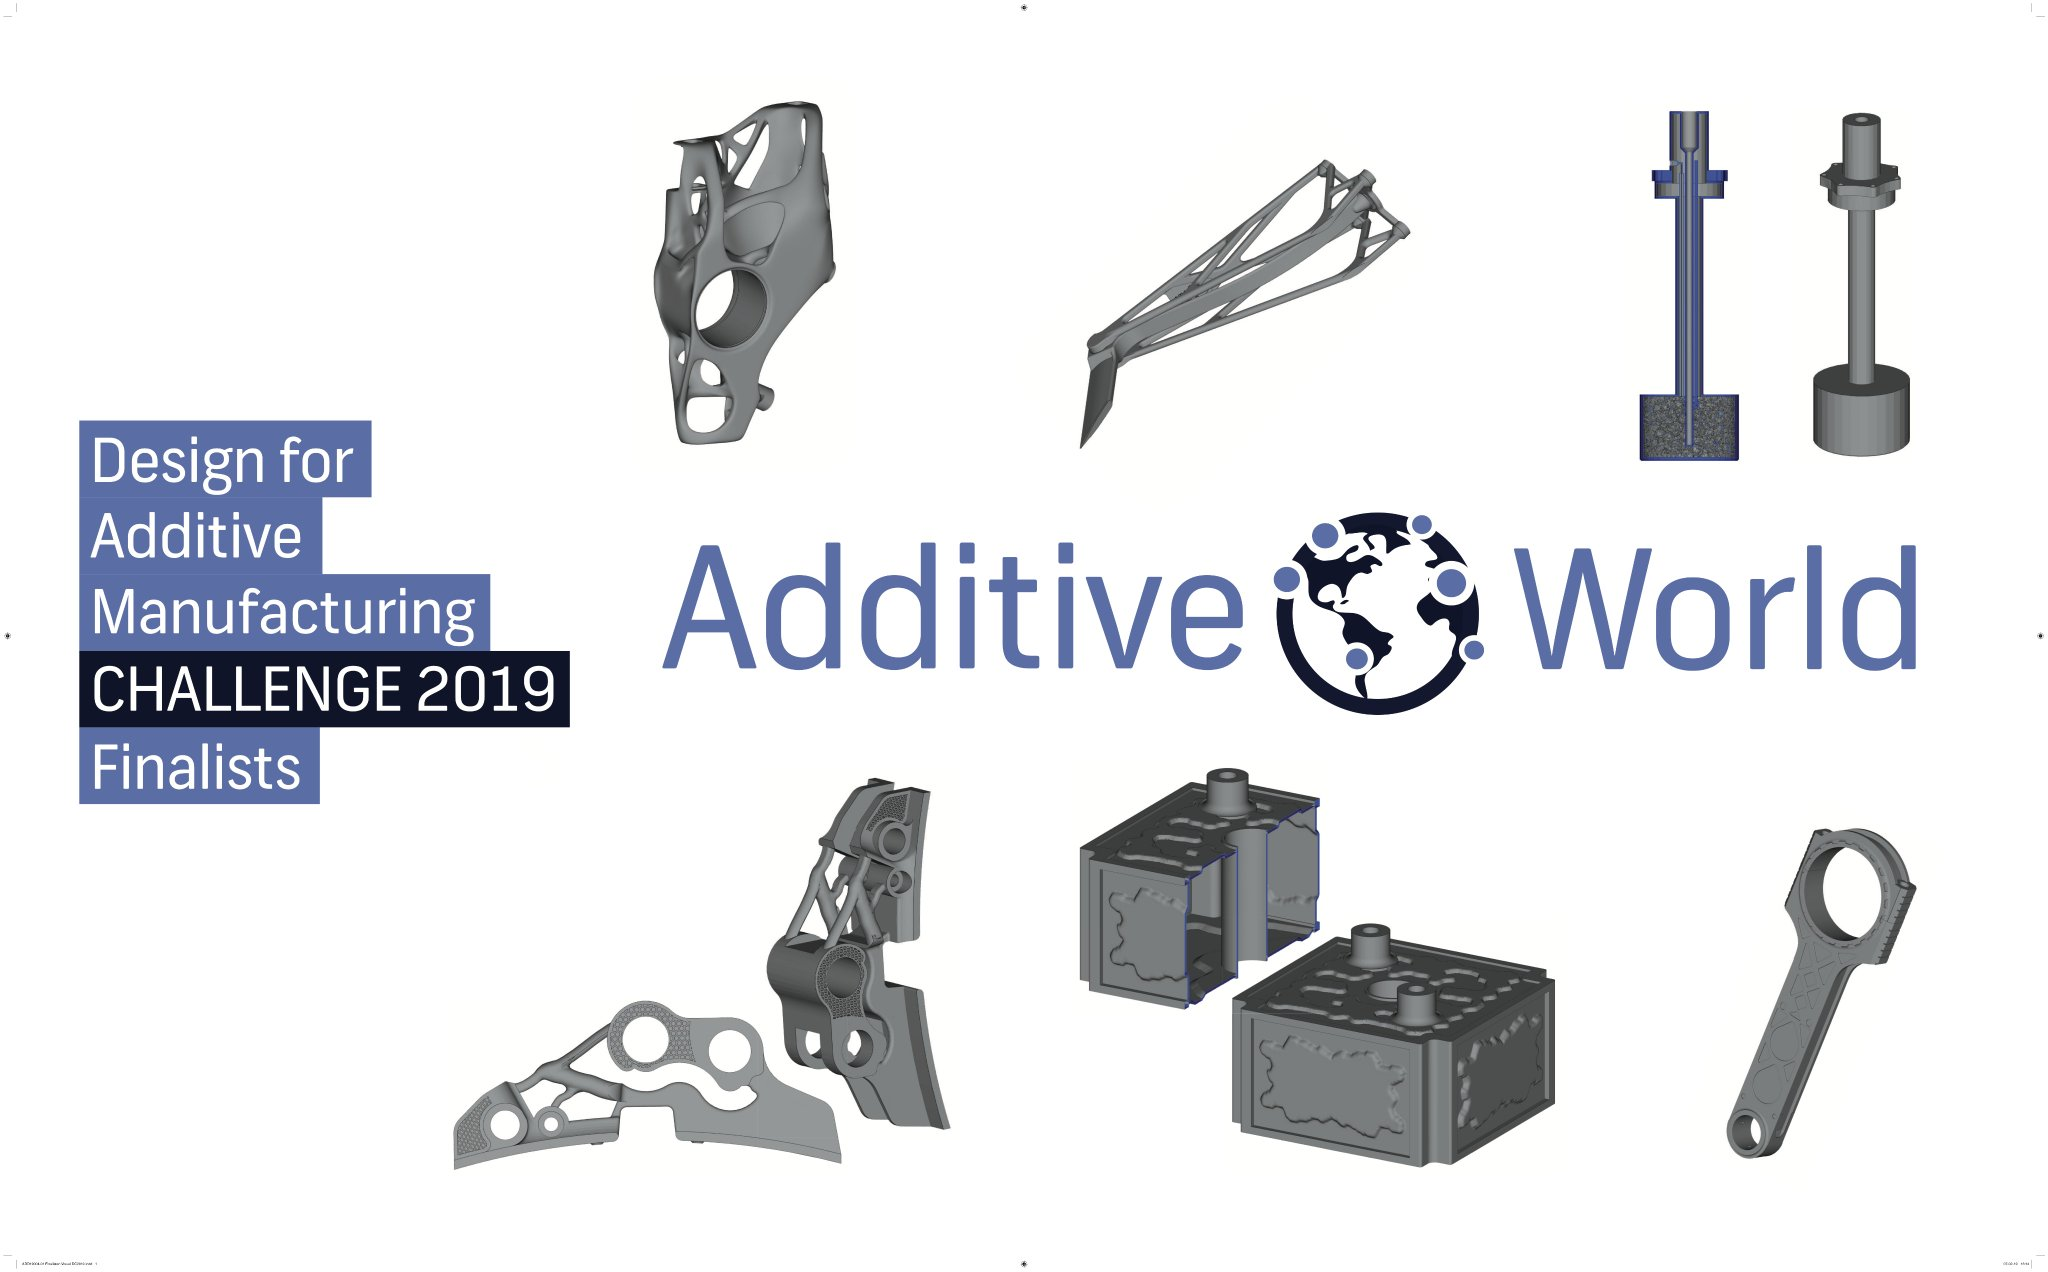 Redesigns of the finalists for the Additive World Design for Additive Manufacturing Challenge 2019. Image via Additive Industries.